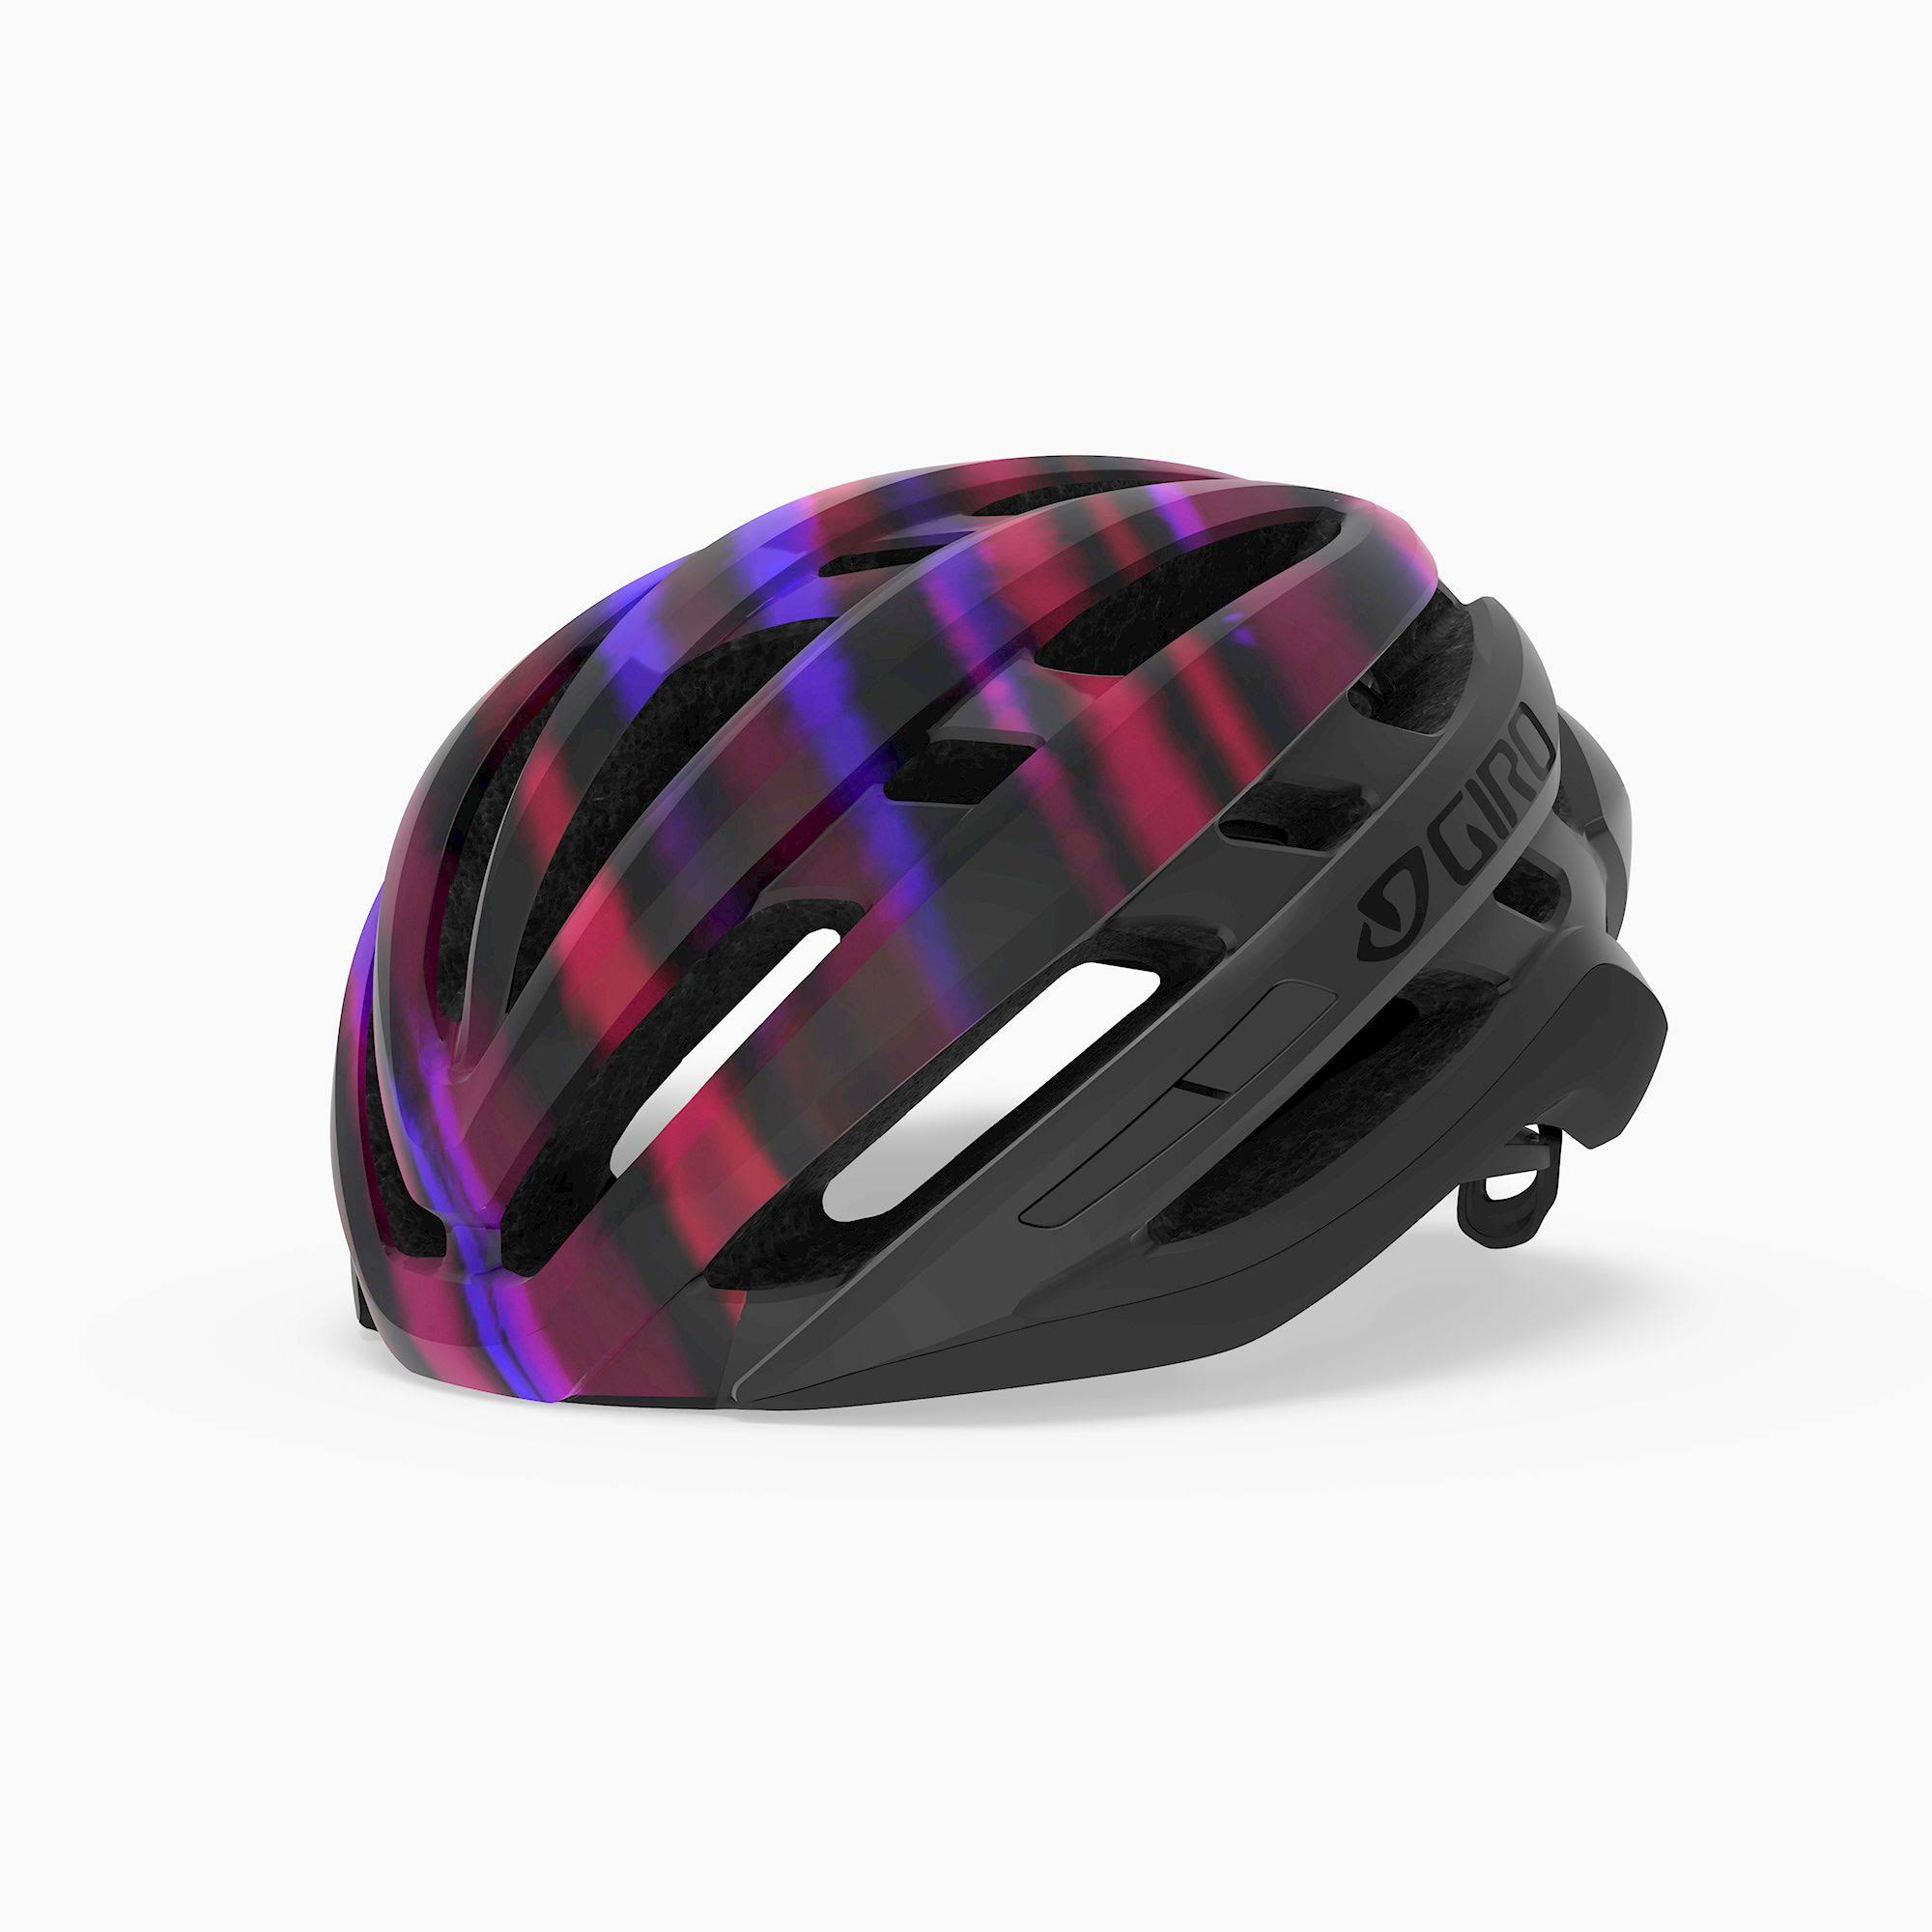 Giro Agilis MIPS Helmet - Women's Matte Black/Electric Purple, M